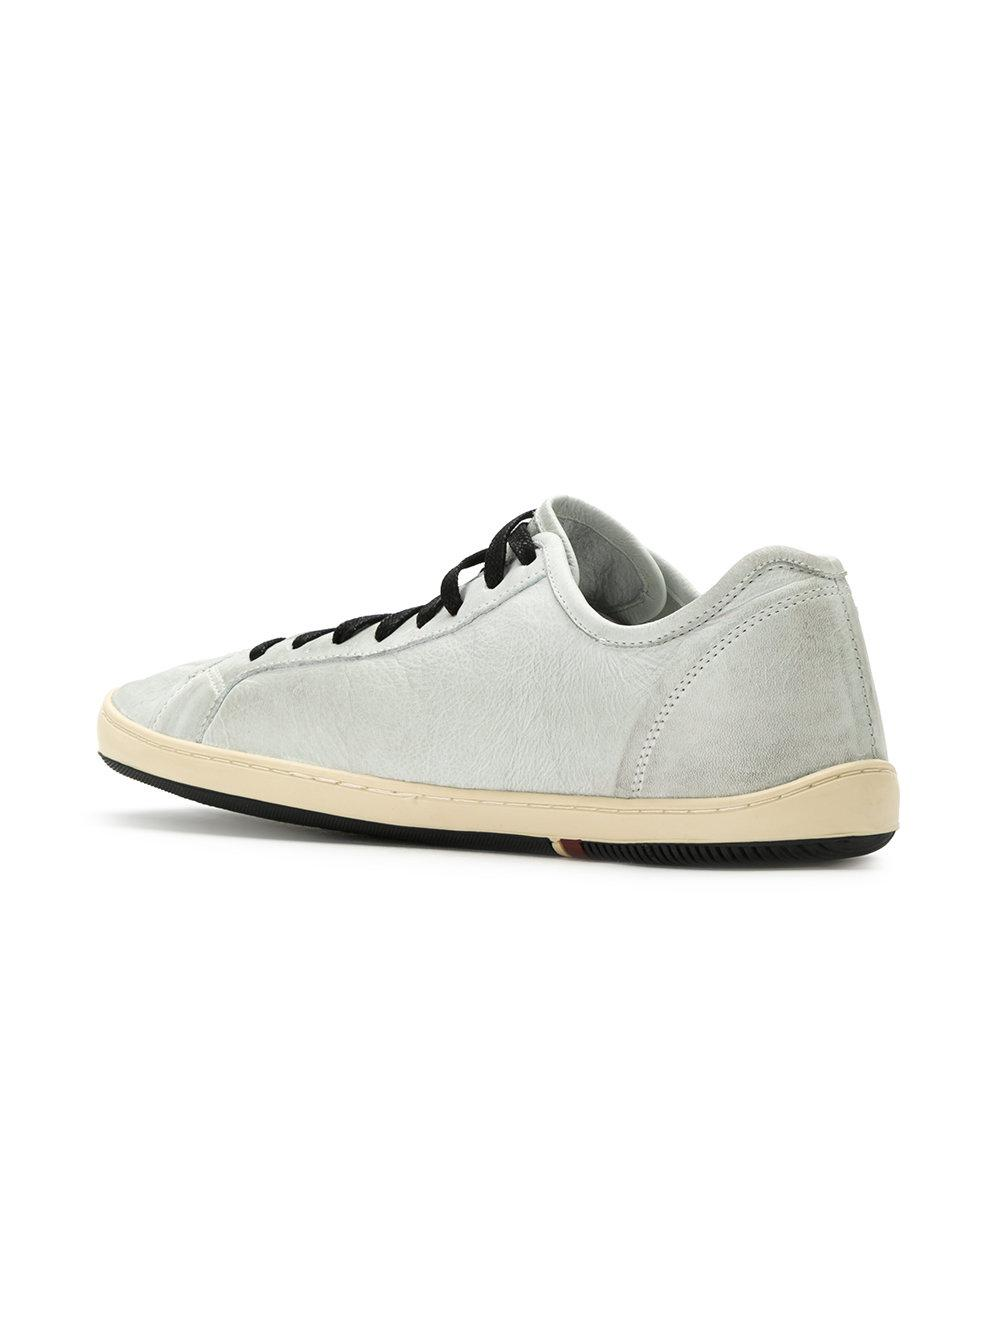 Volley Shoes White Leather